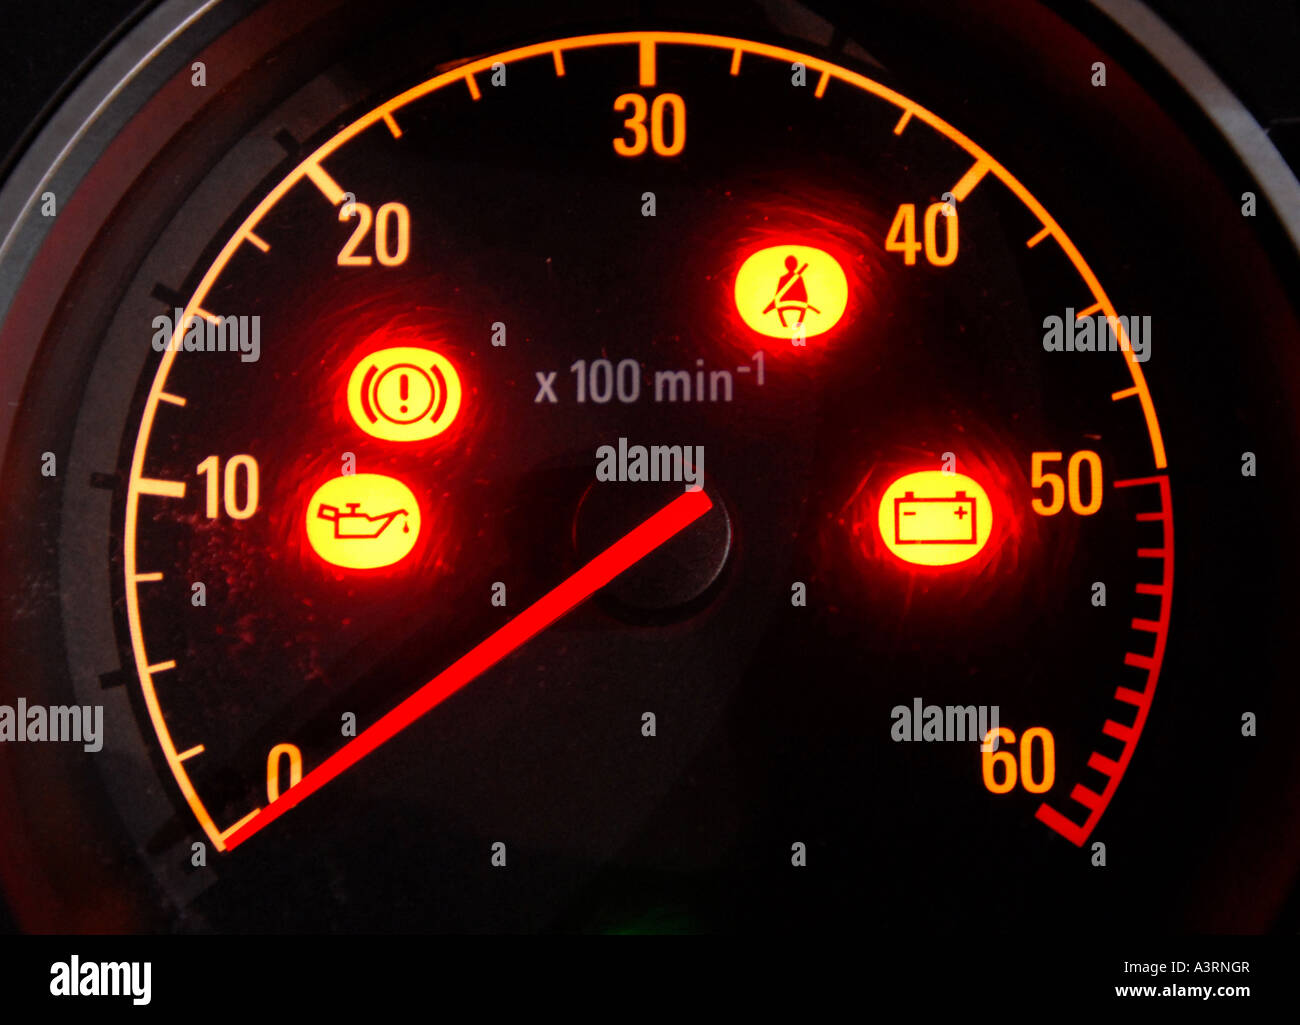 Car Warning Lights In Illuminated Dashboard Dial Re